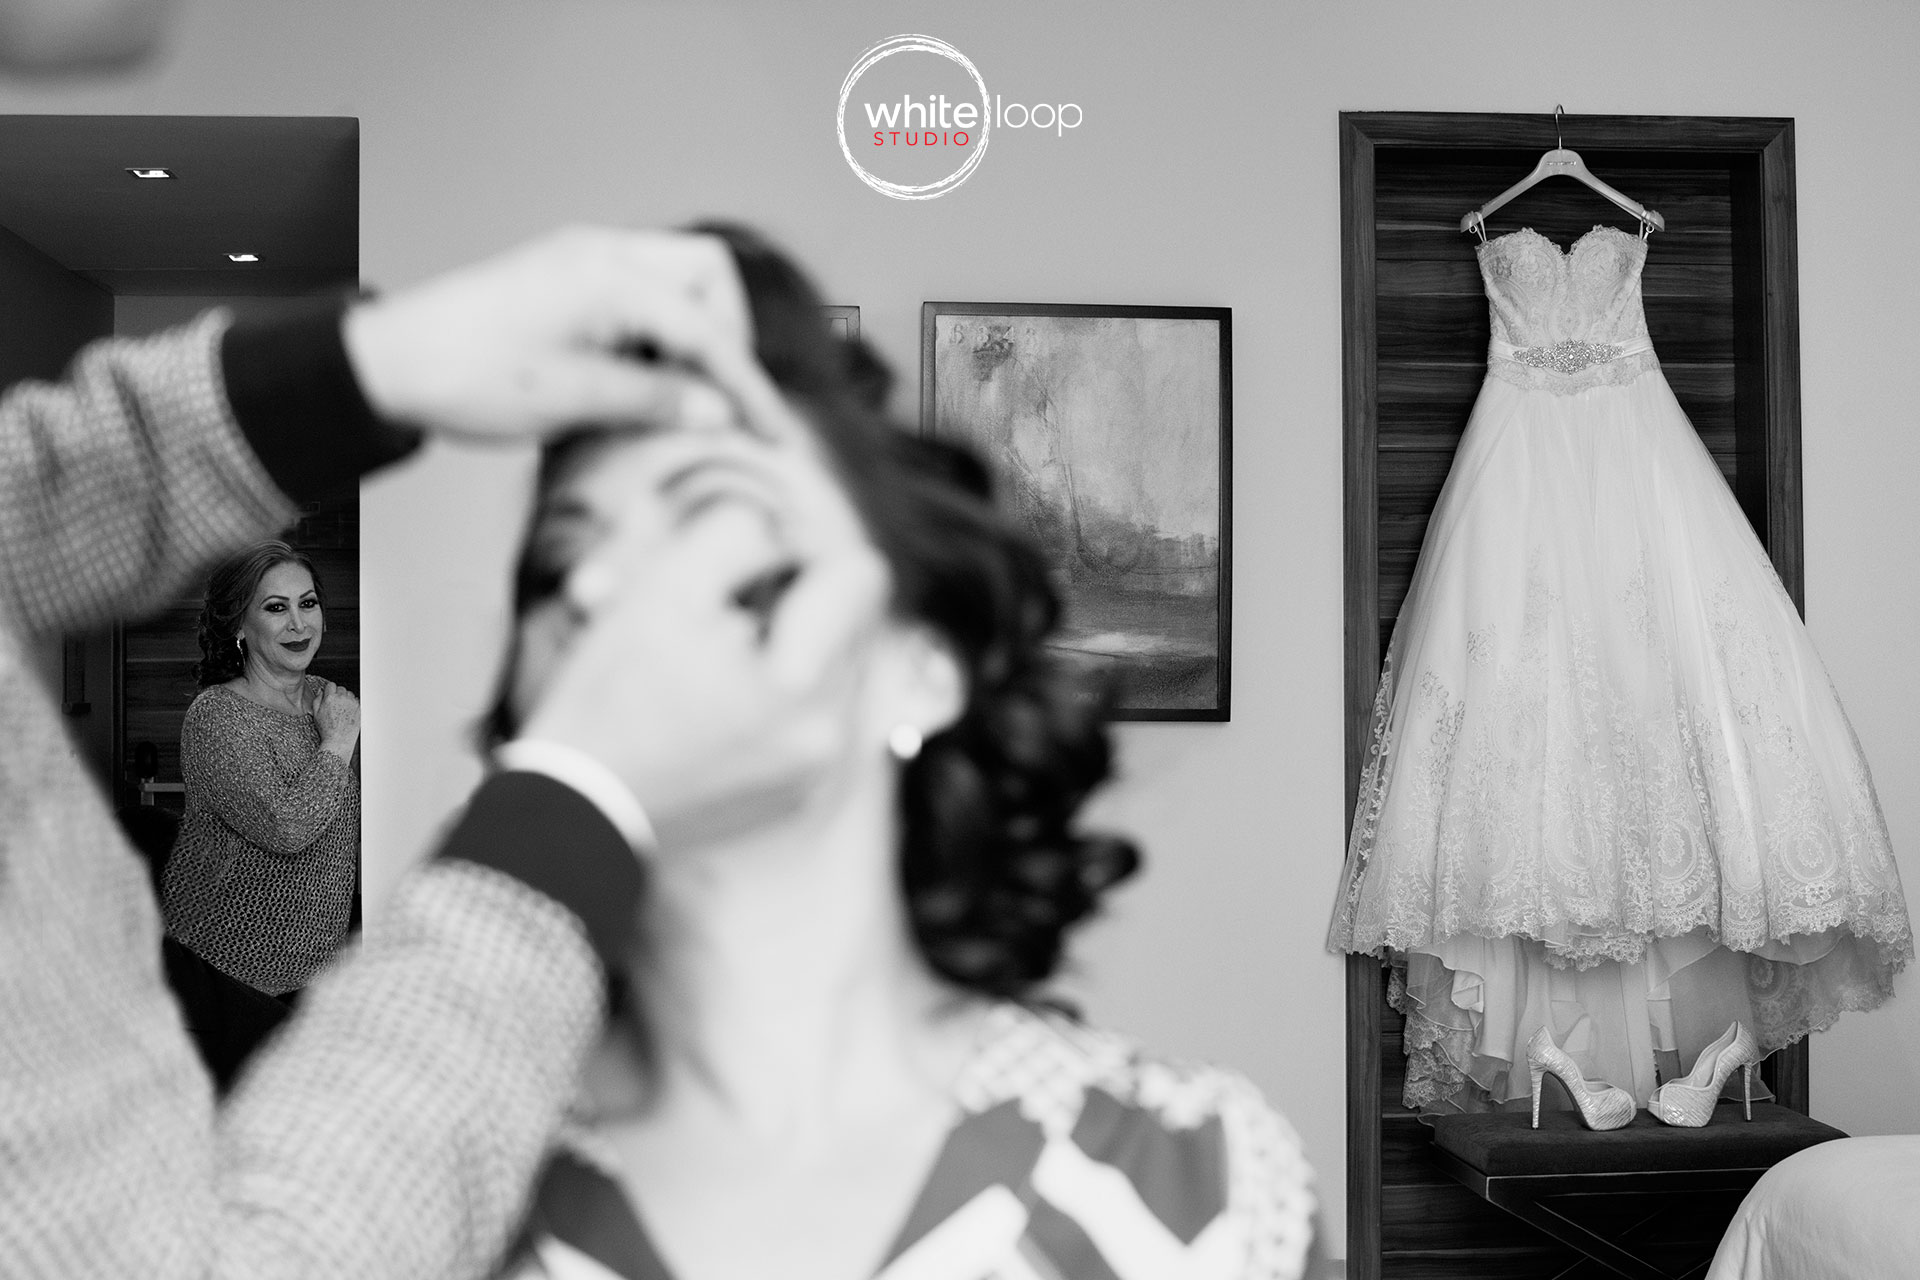 They begin of the make up to the bride while her mother appreciated on the background her daughter getting ready.